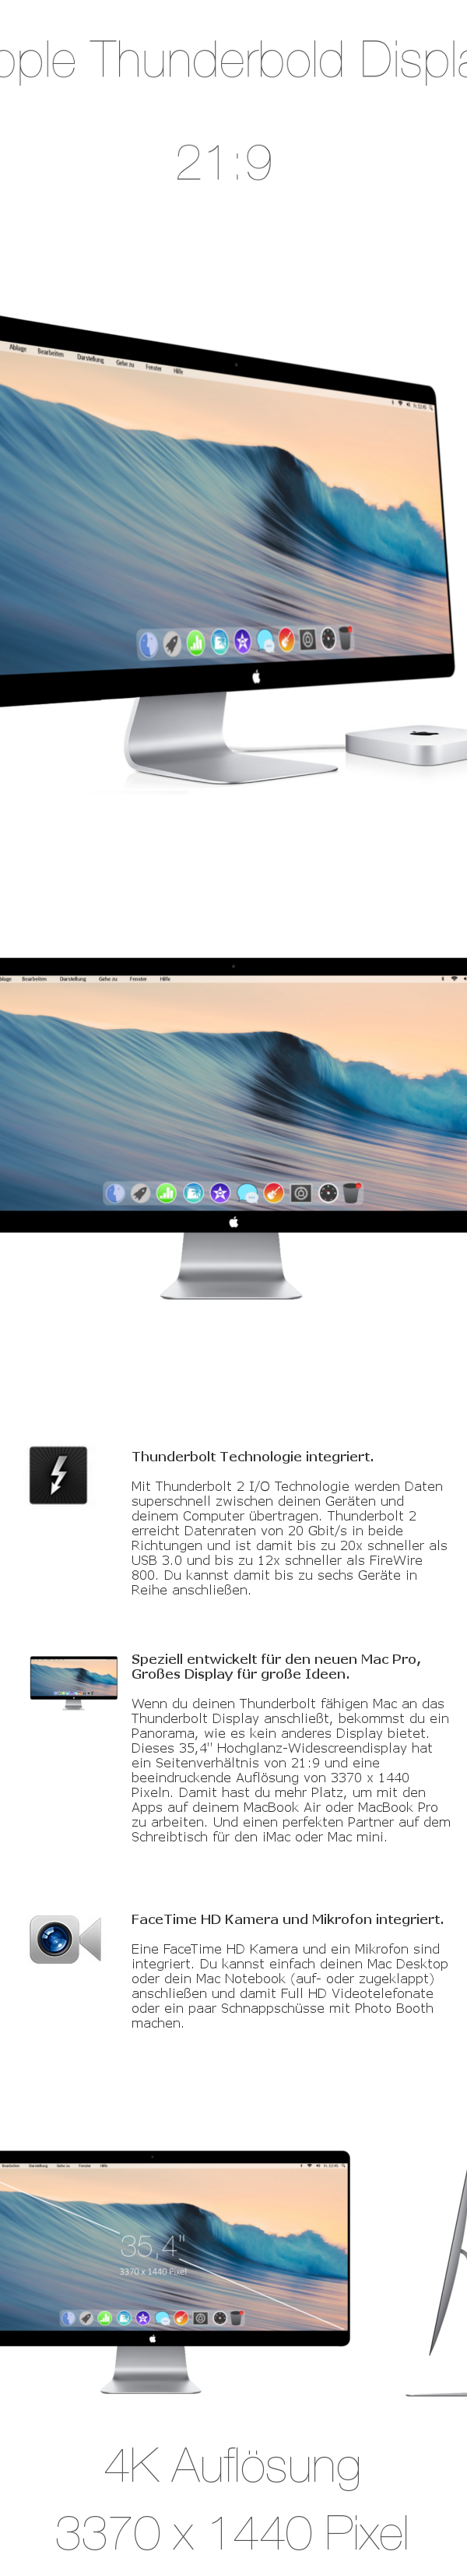 Apple Thunderbold 2 Display 21:9 4K on Behance